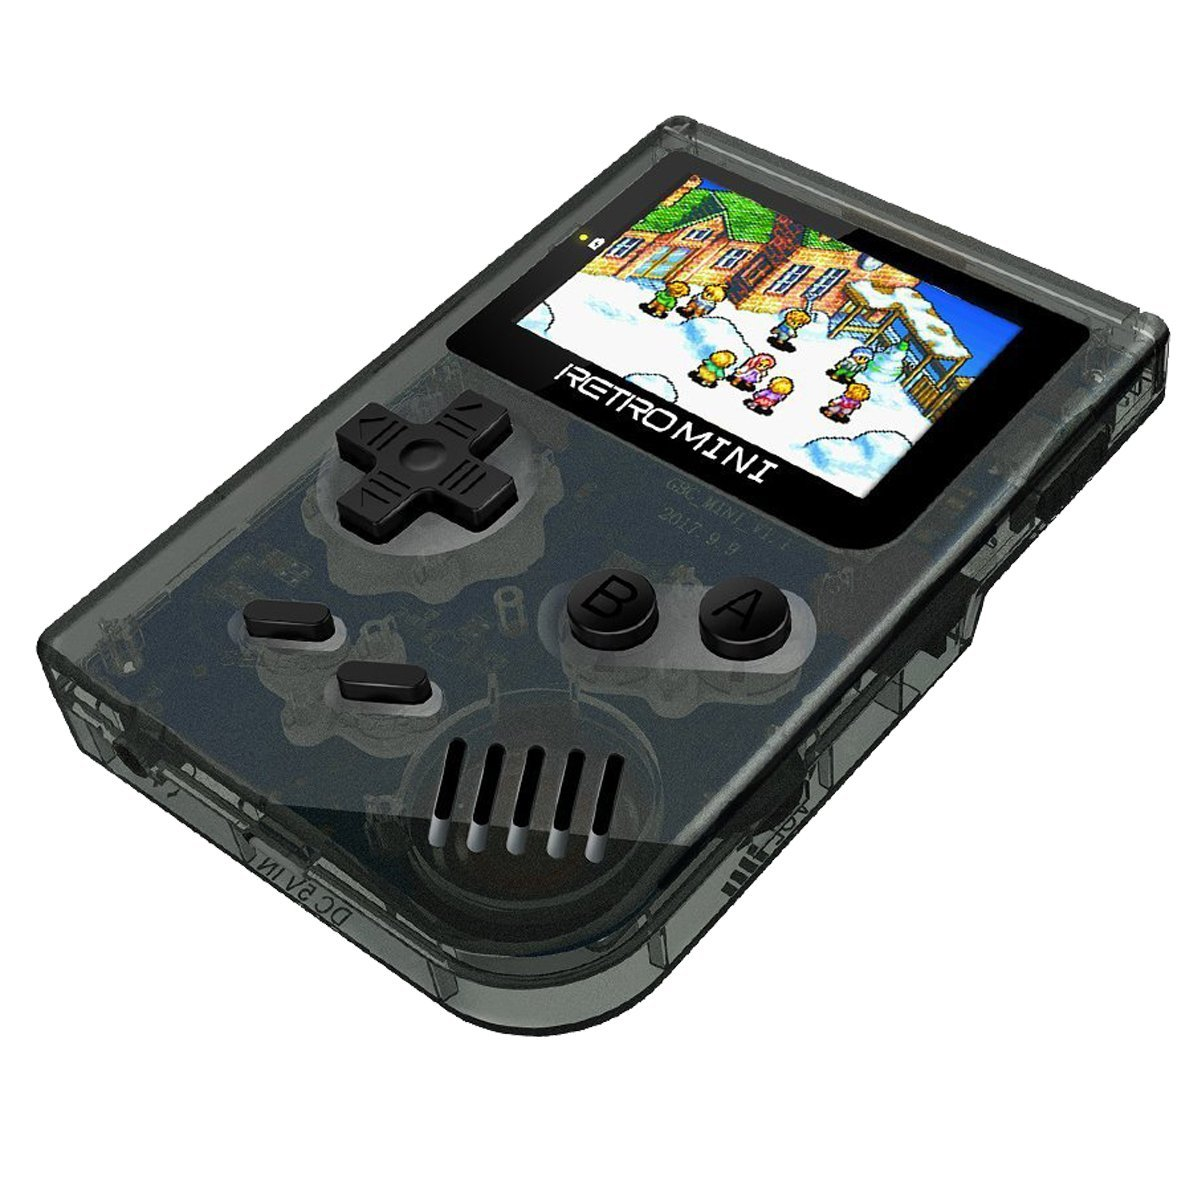 Handheld Game Console, 32 Bit Pocket Game Console For Kids, Retro Handheld Video Game with 548 Classic Games In 8G TF Card, Good Gifts For Children to Adult.